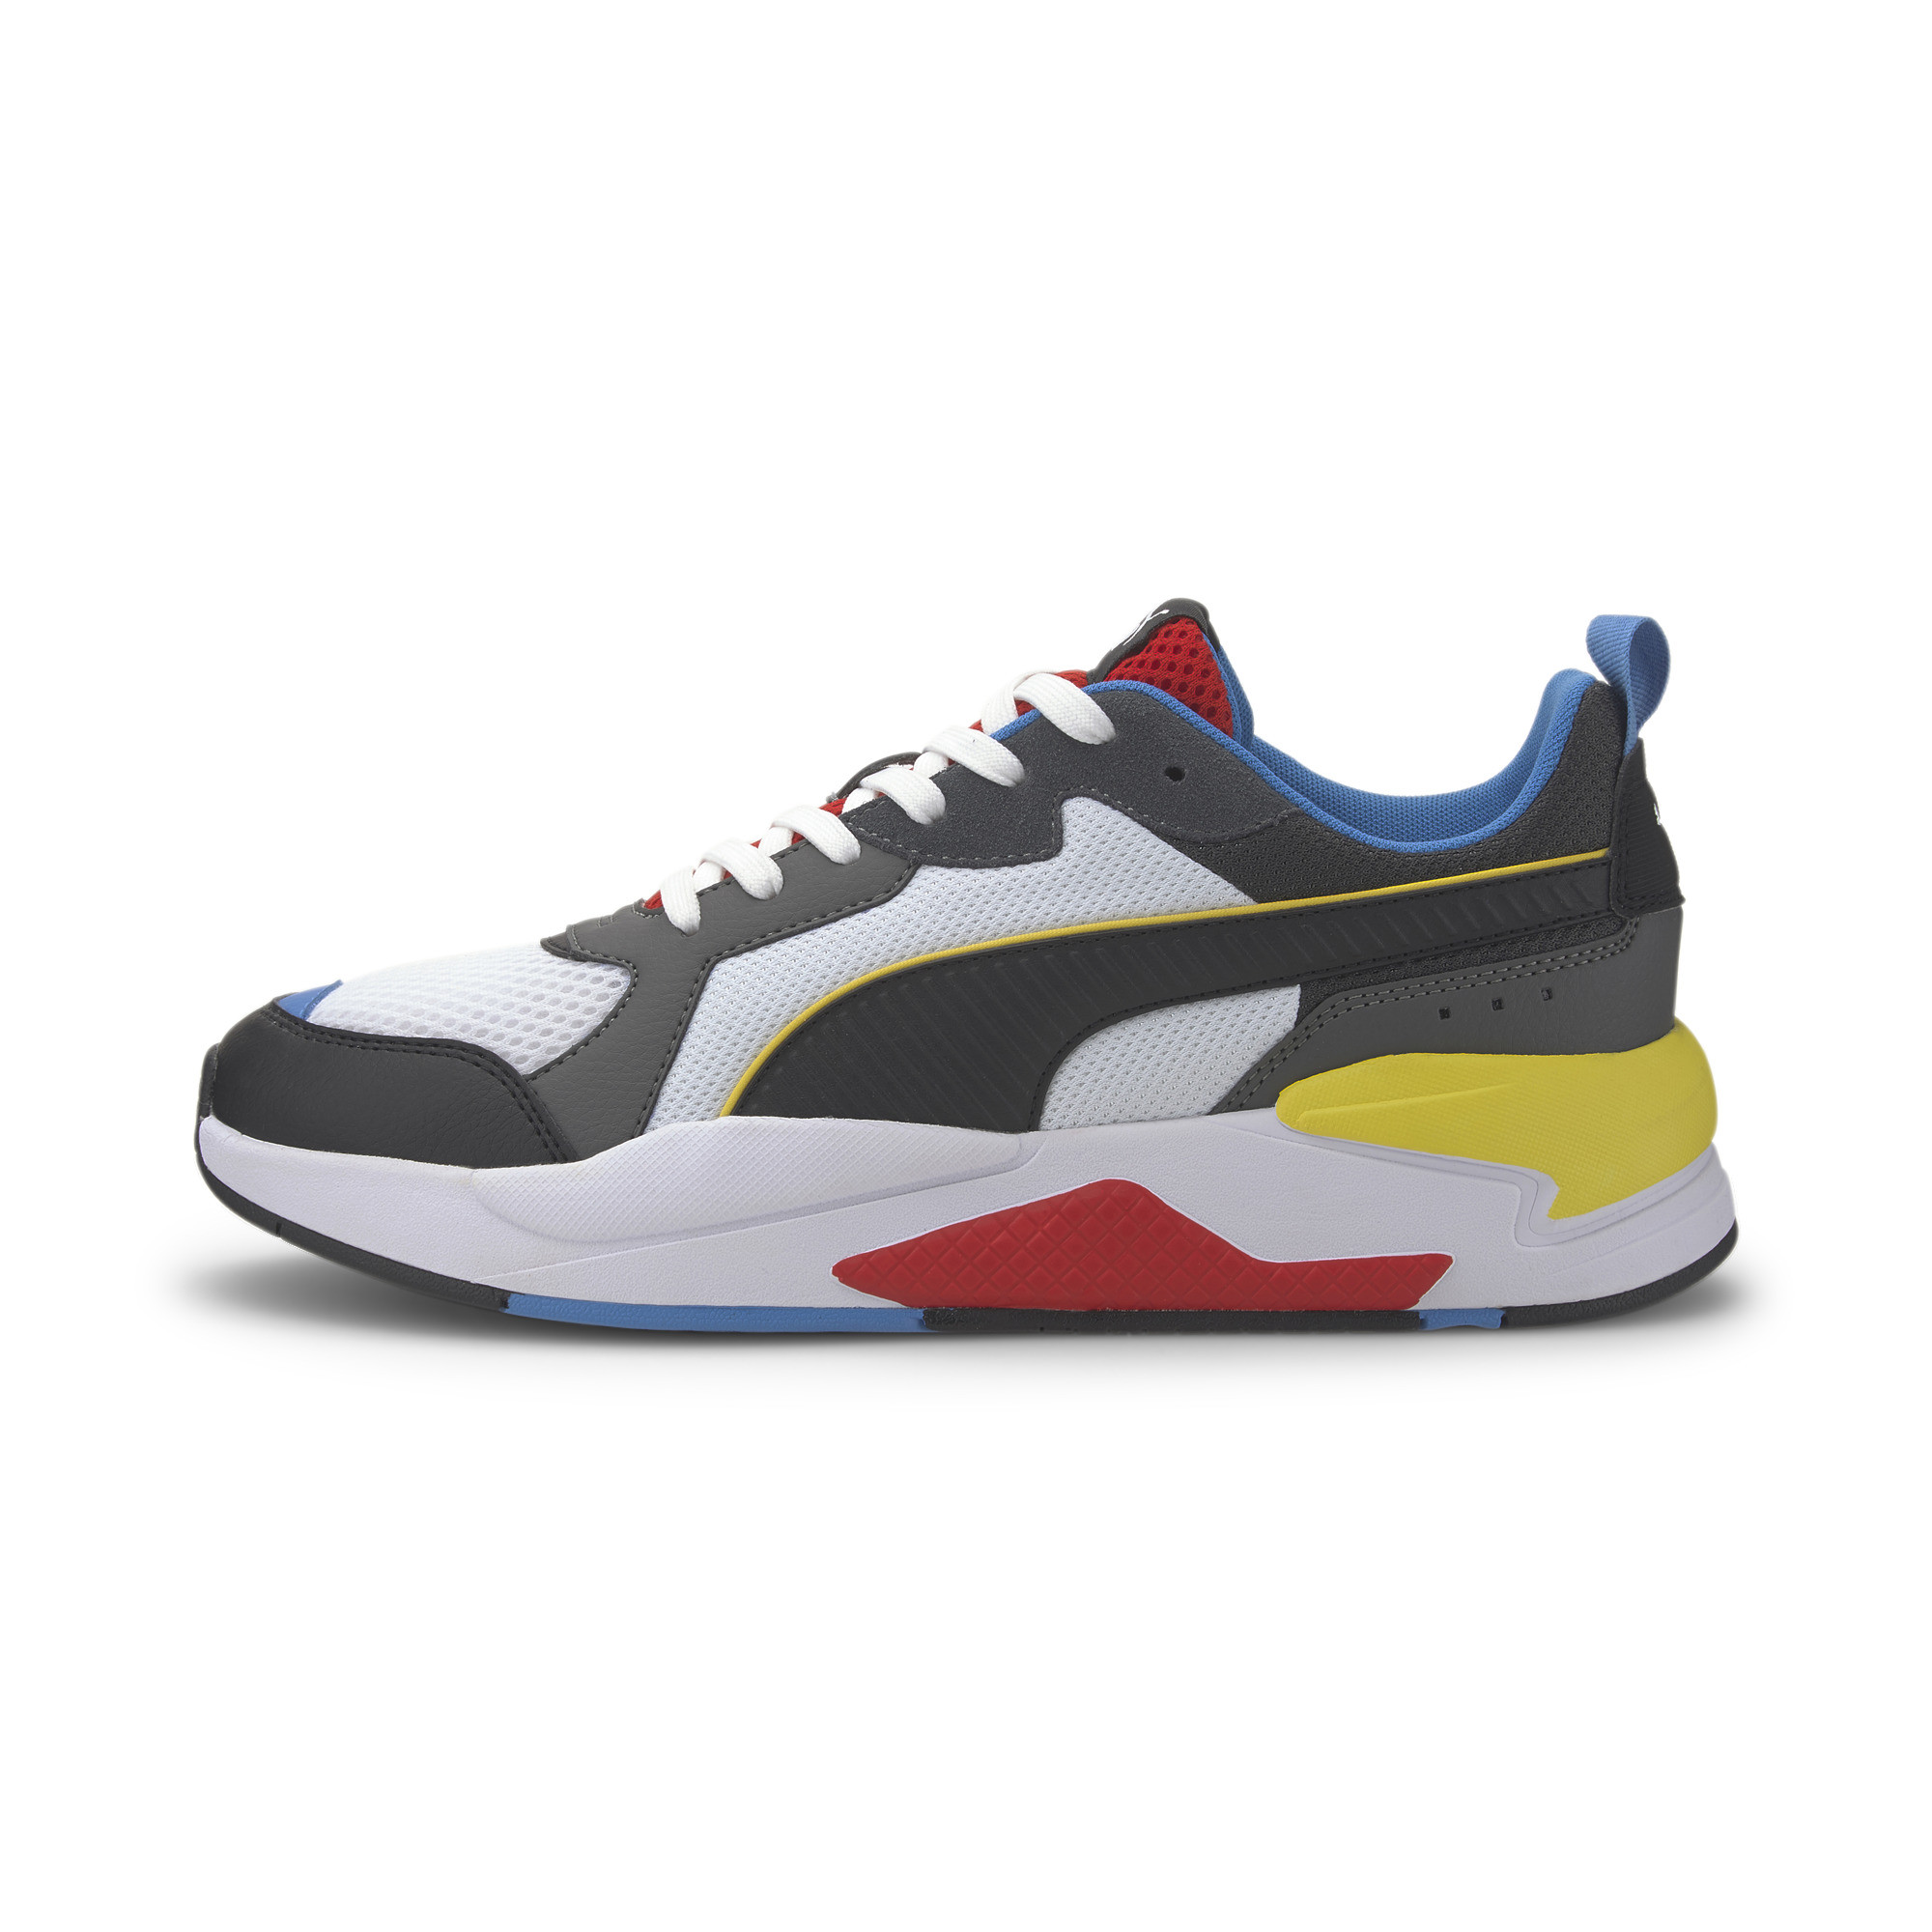 PUMA-Men-039-s-X-RAY-Sneakers thumbnail 4